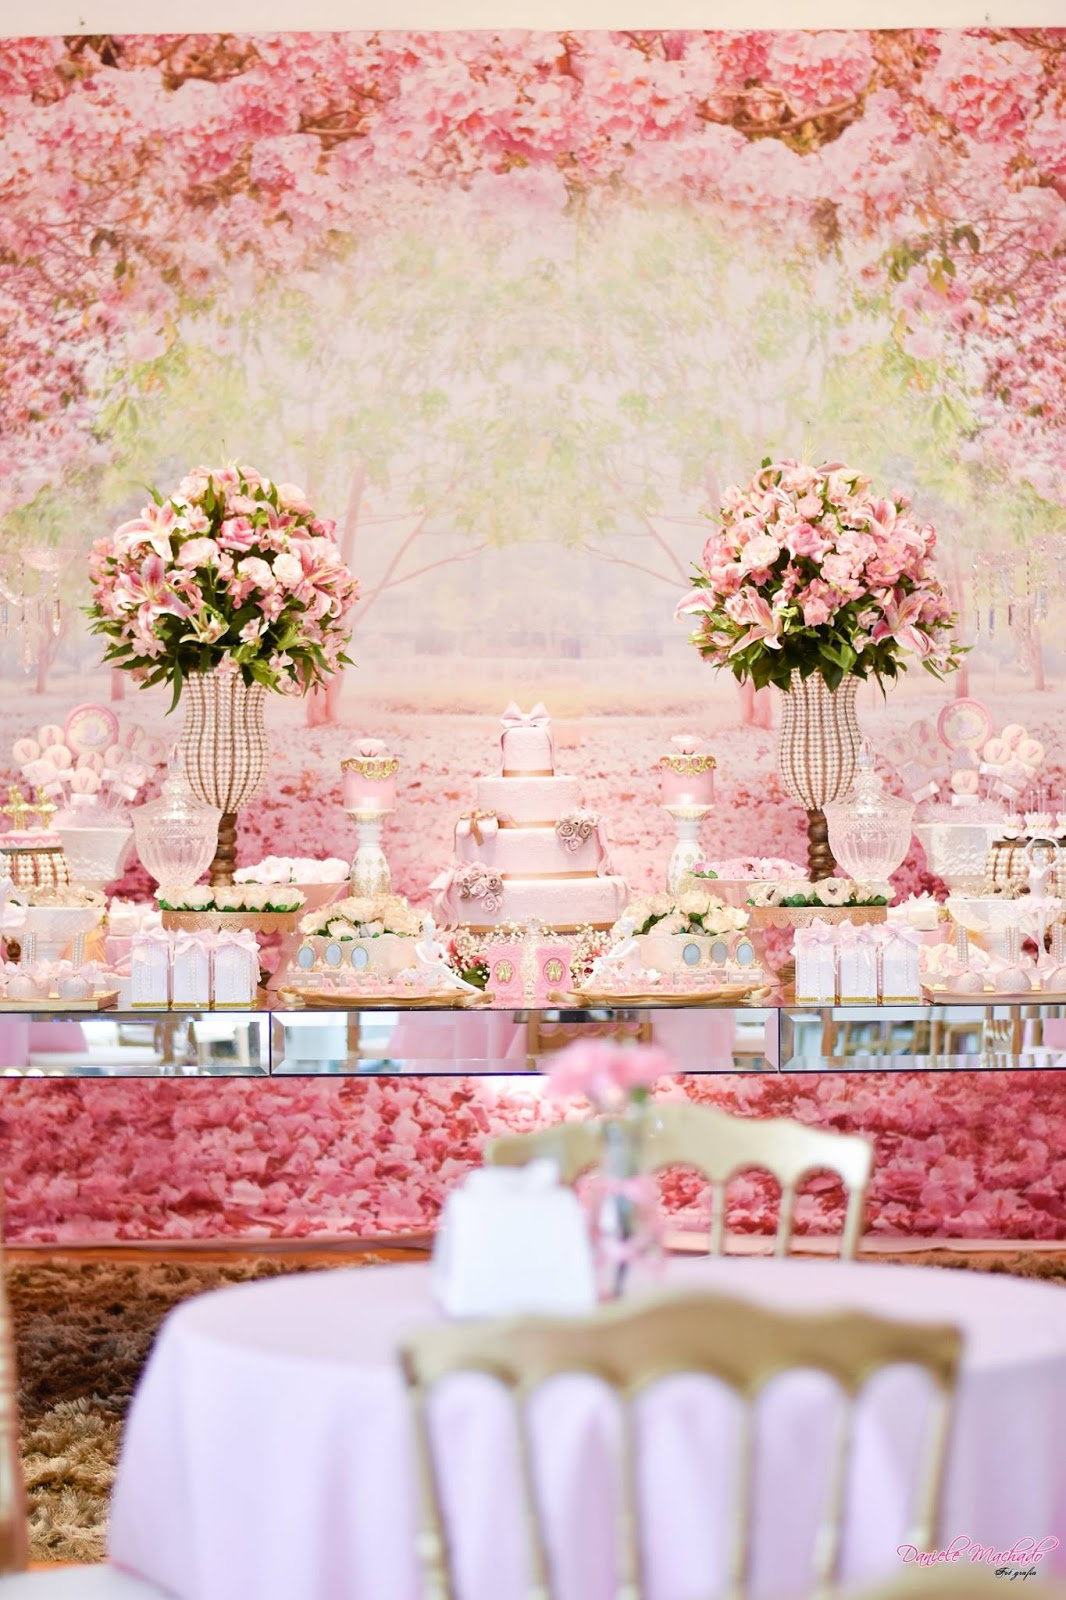 Wedding decorations using crepe paper october 2018 Diana Patricia dianapla on Pinterest